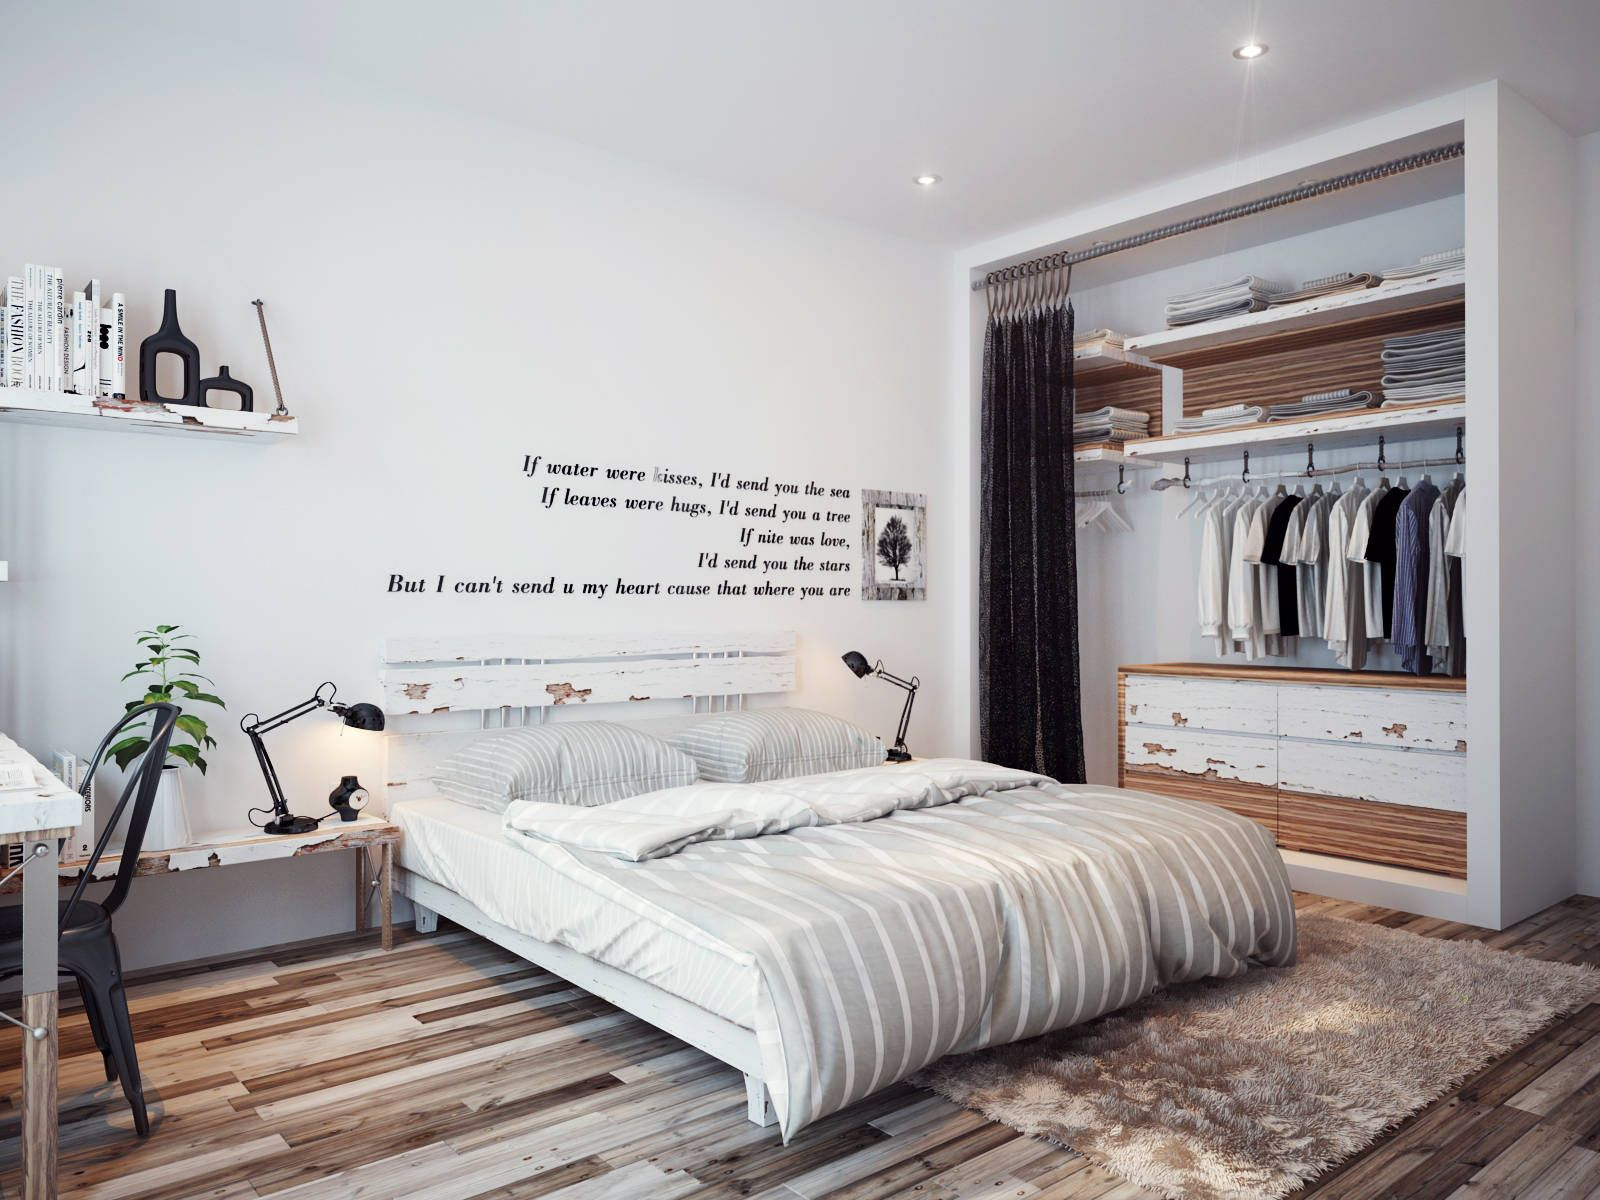 White Walls Decorating Bedroom Bedroom Wall Quote White Wall Large Closet Design Double